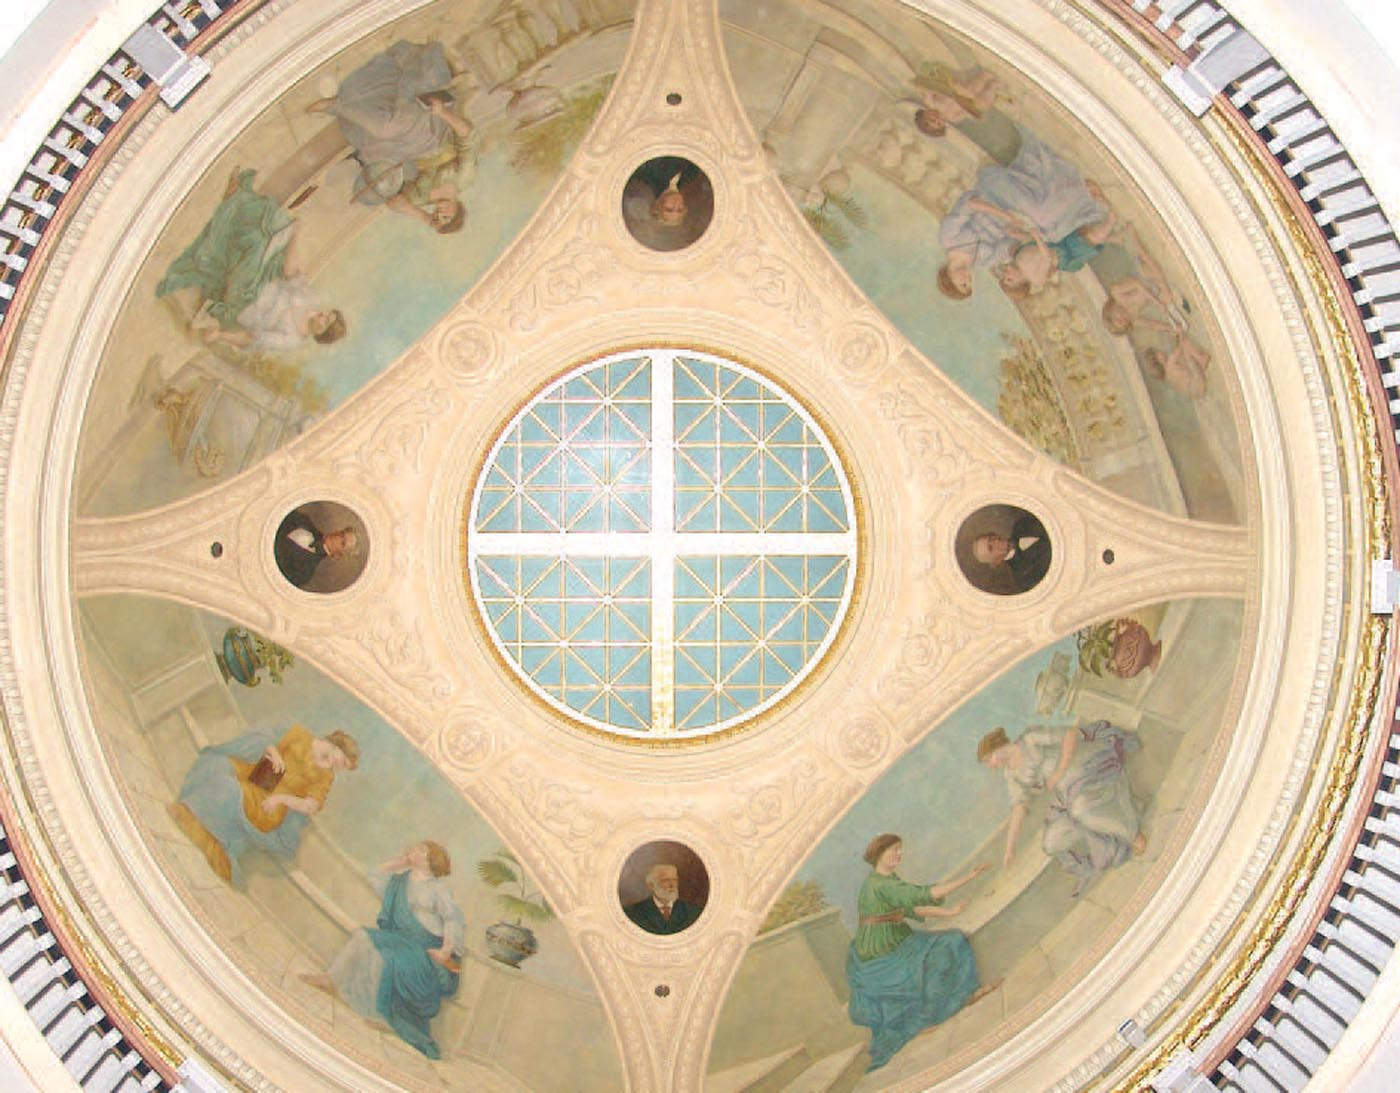 Eugene B. Monfalcone's paintings in the dome of the Rotunda of Ruffner Hall depict the foundations of learning.